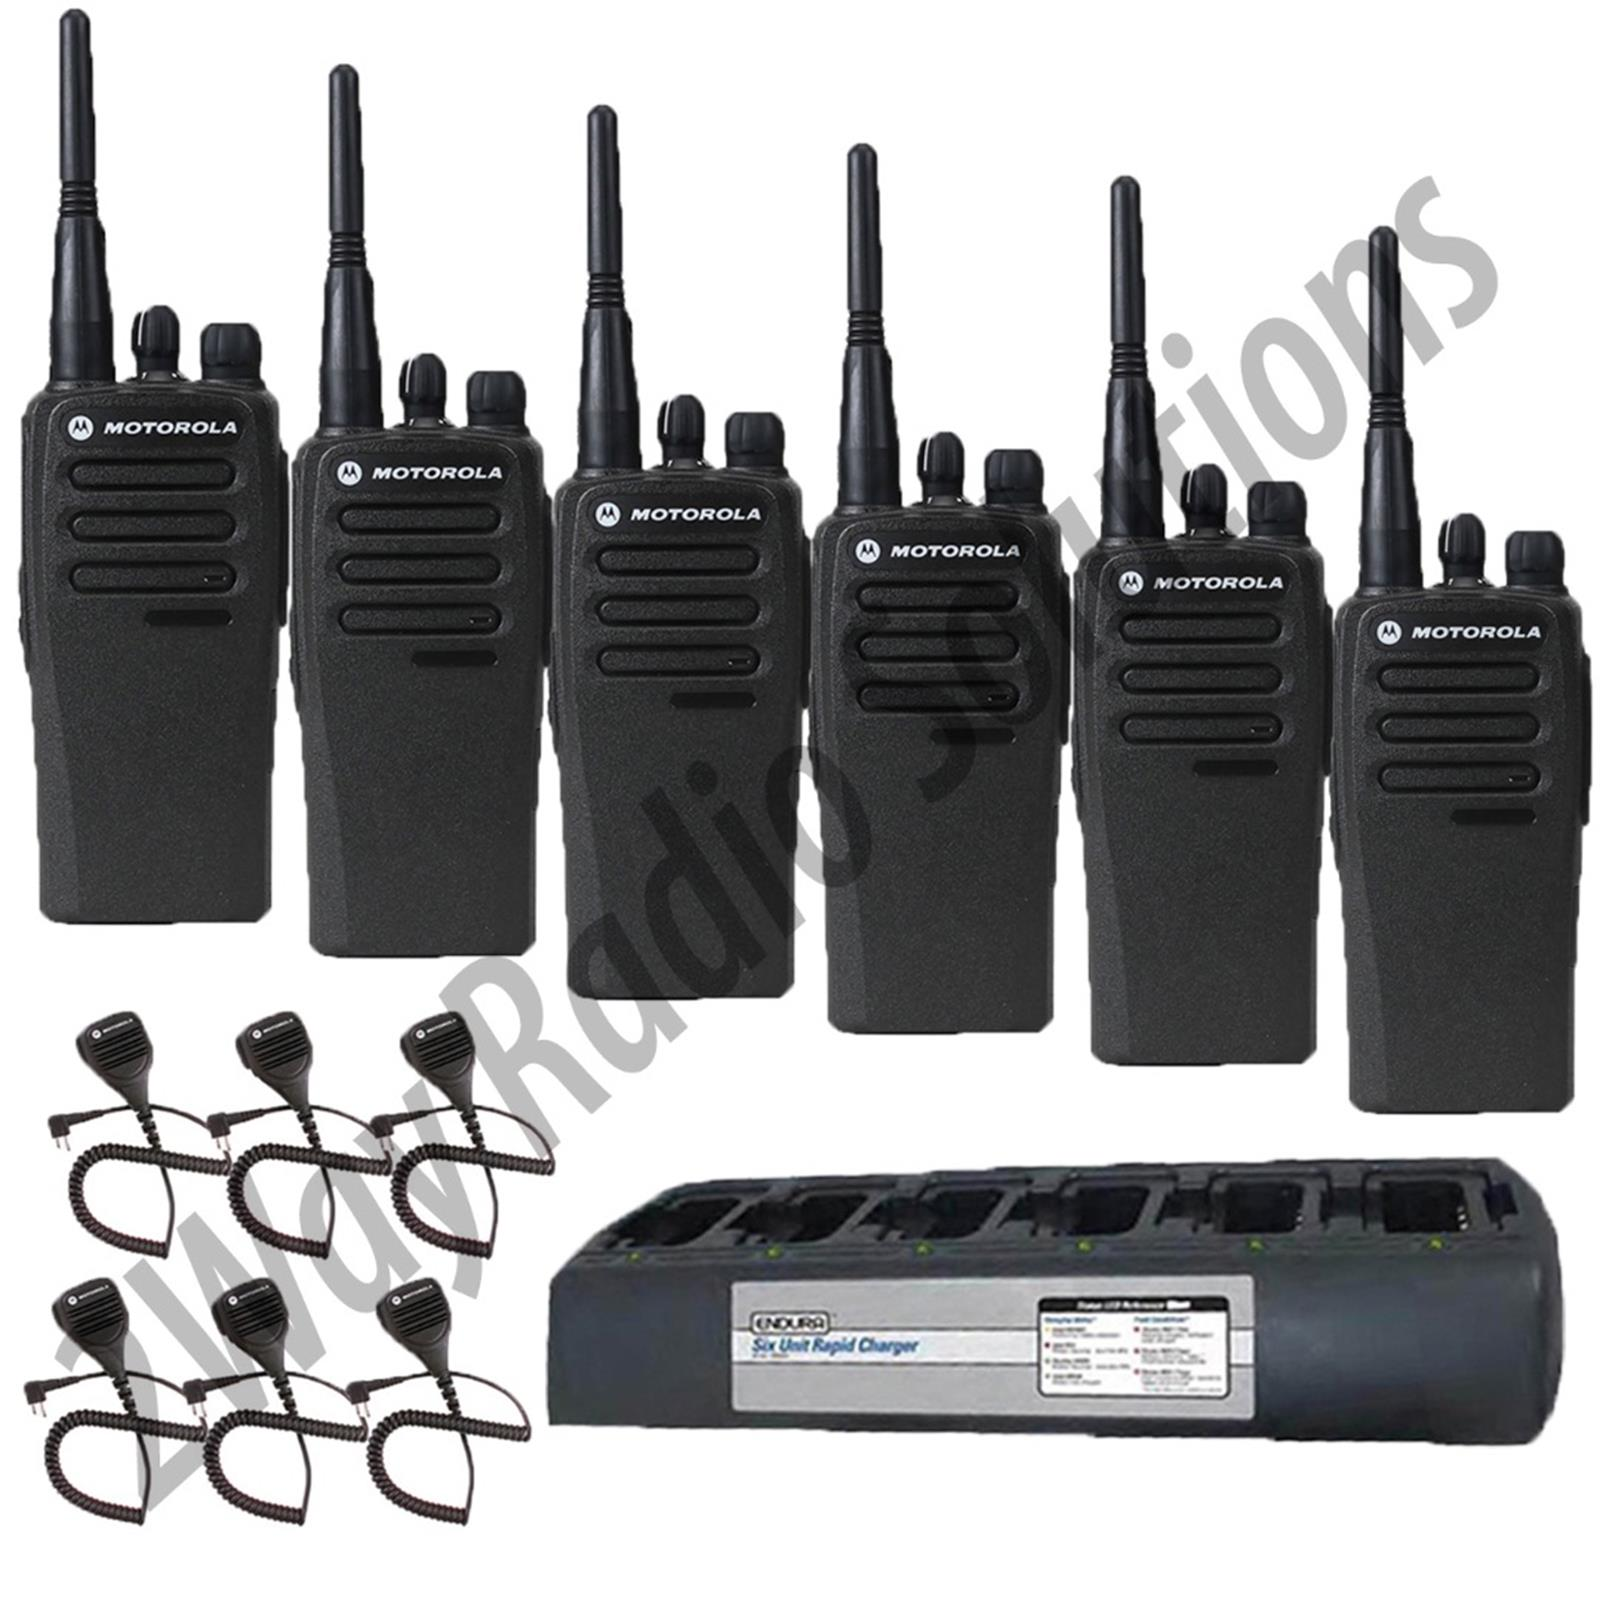 Motorola CP200d Radio 6 Pack with Endura Multi-Charger and Speaker Mics